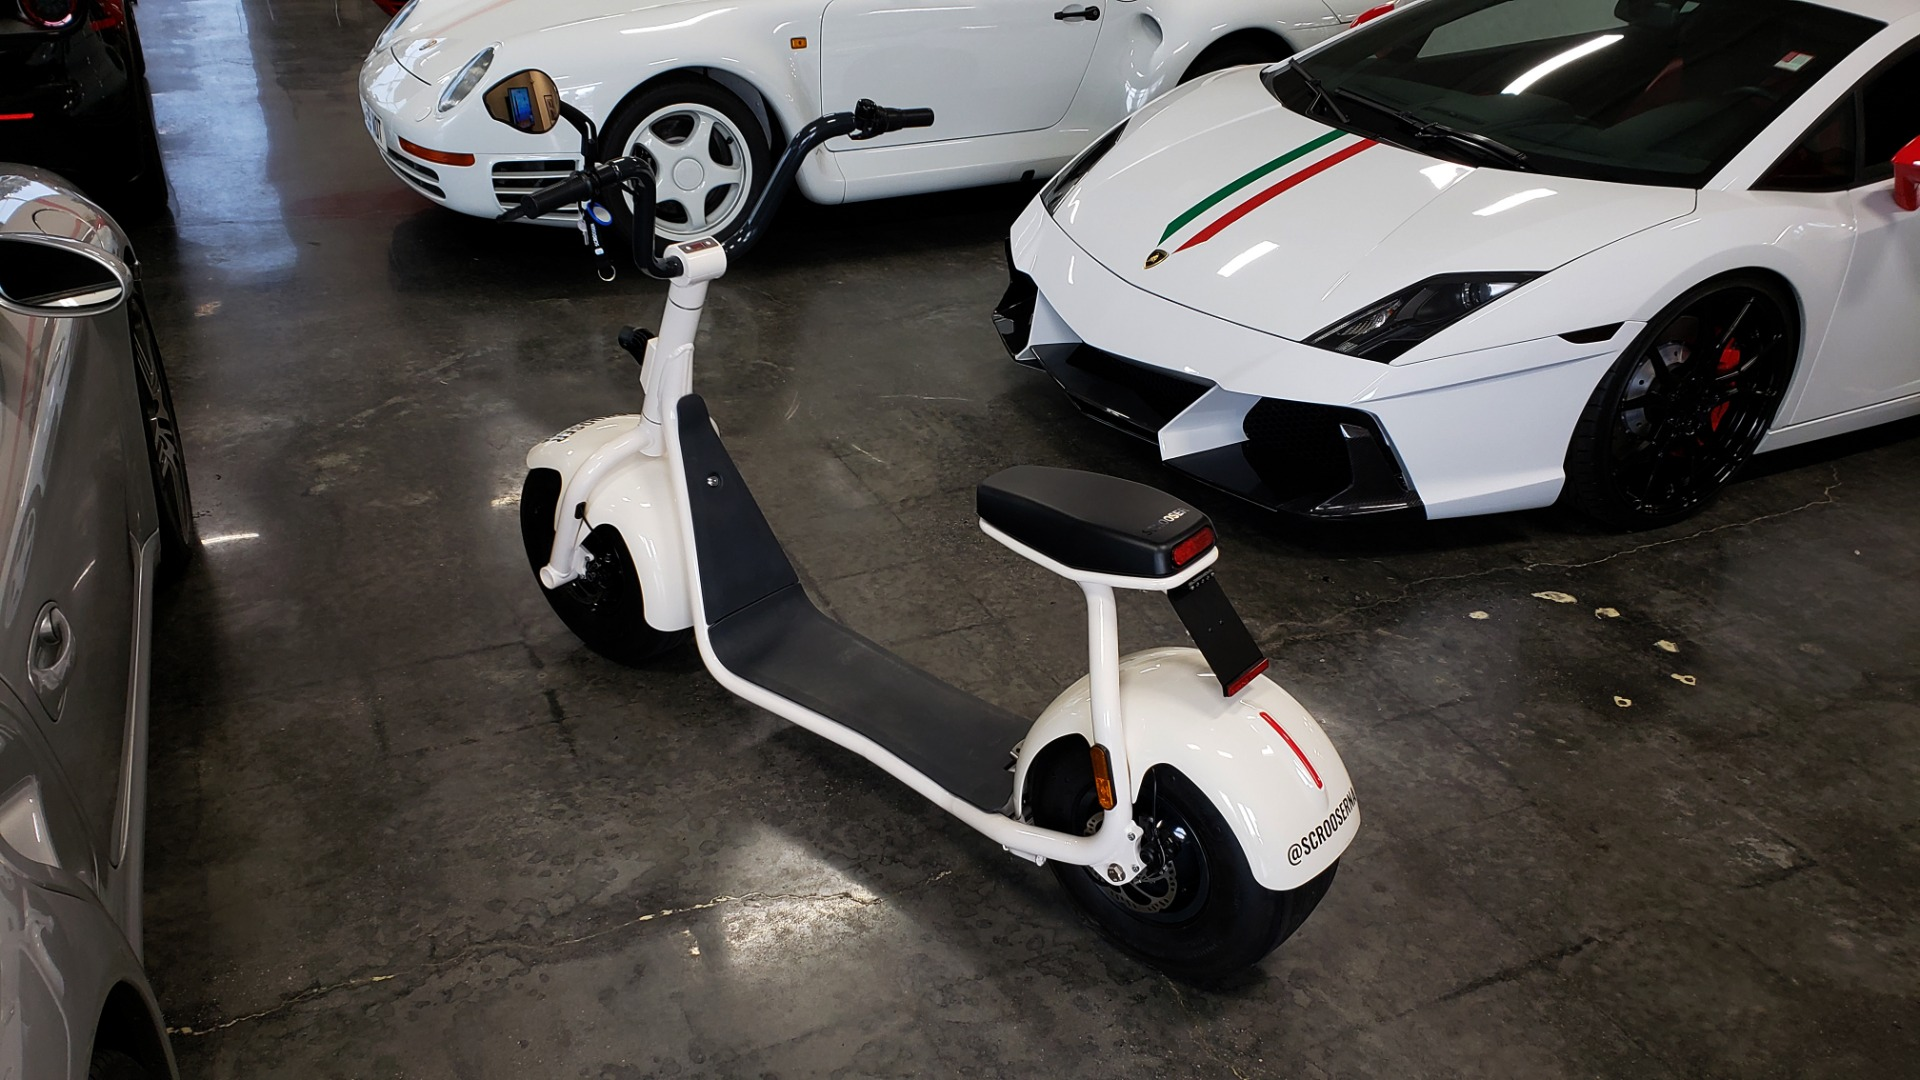 Used 2018 SCROOSER ELECTRIC SCOOTER SELF BALANCED / CUSTOM WHITE / 15.5 MPH / 34 MI RANGE for sale $1,799 at Formula Imports in Charlotte NC 28227 5